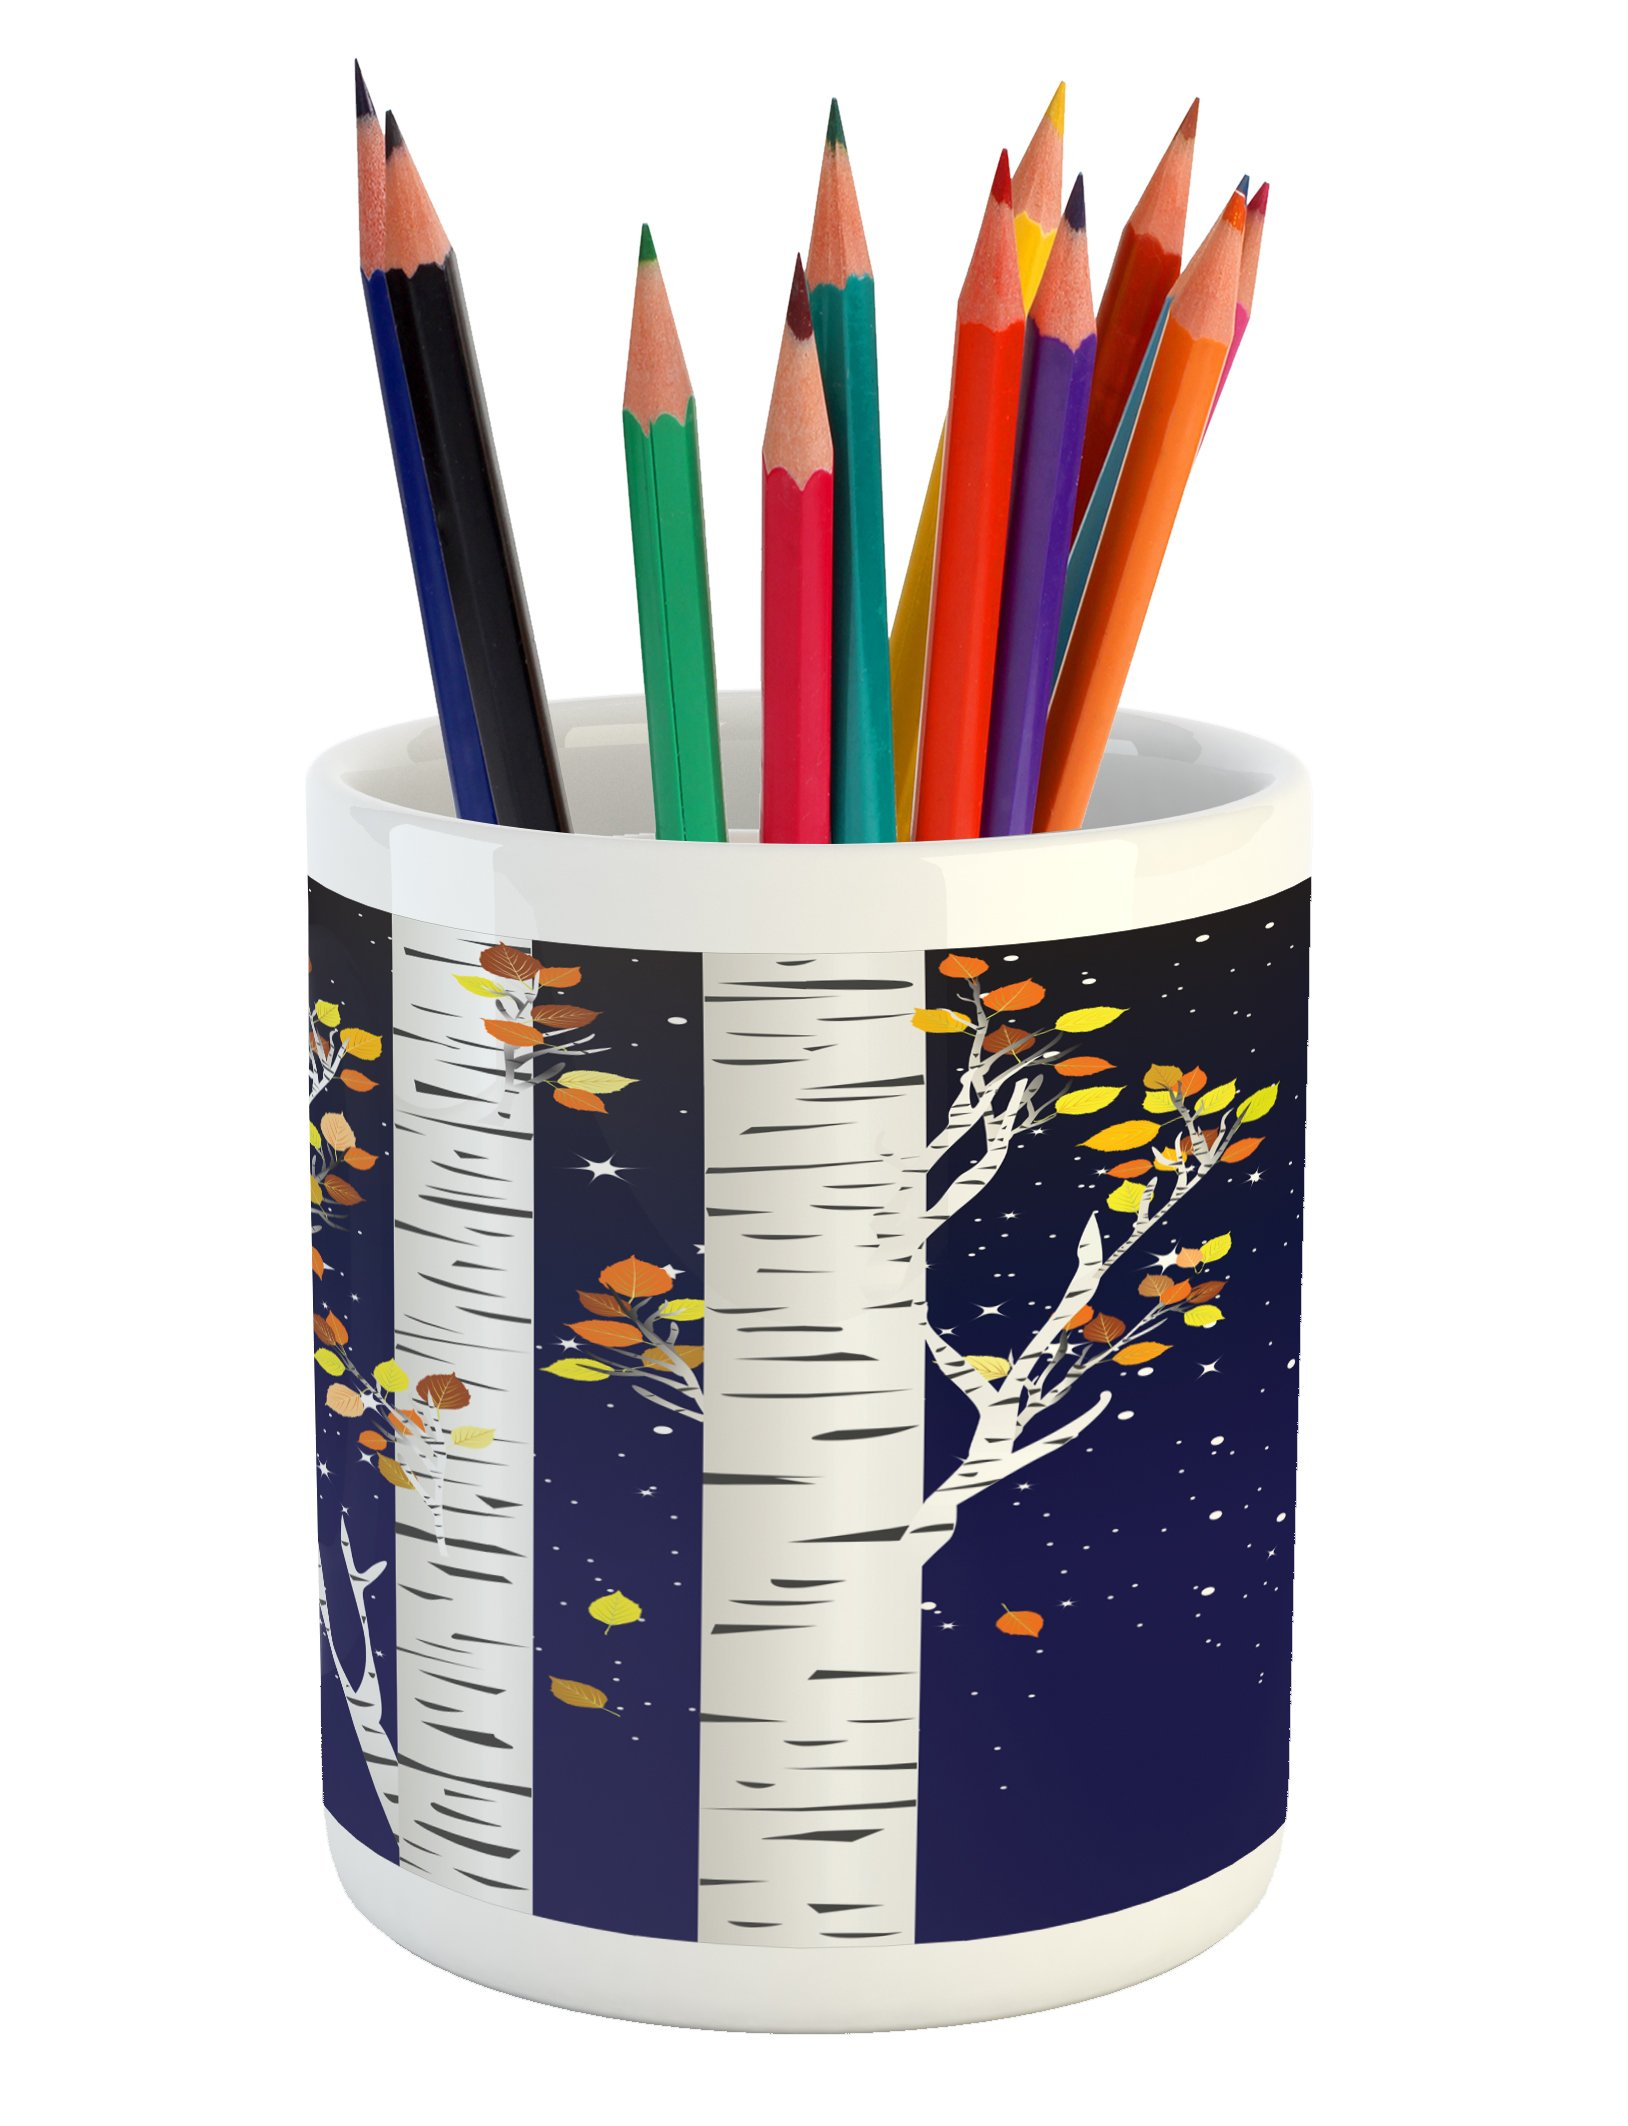 Ambesonne Autumn Pencil Pen Holder, Birch Trees with Colorful Fall Season Foliage Leaves on a Starry Night Sky Backdrop, Printed Ceramic Pencil Pen Holder for Desk Office Accessory, Multicolor